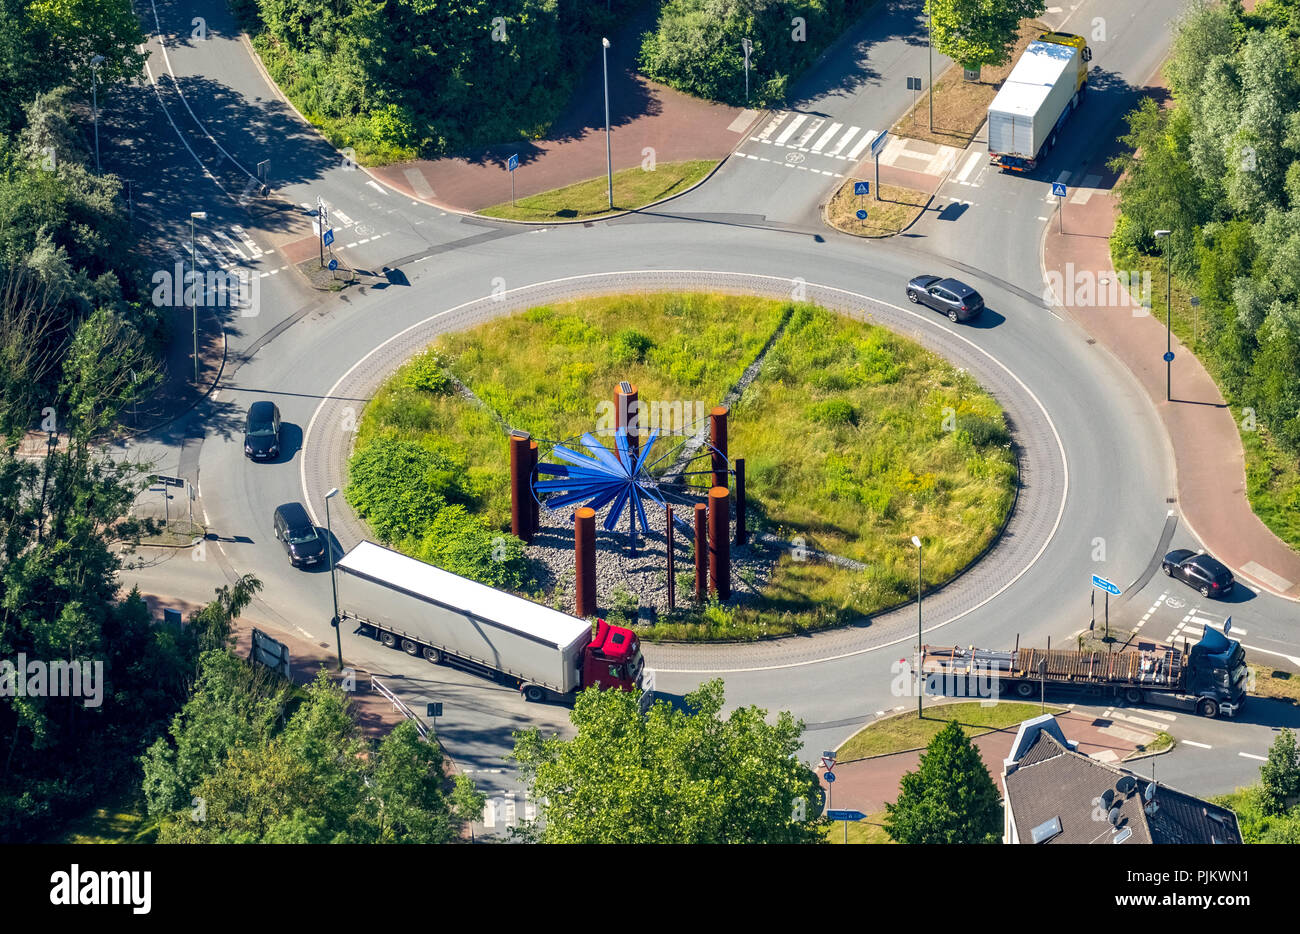 Truck in the roundabout Kohlenstraße Heussnerstraße Upper steel industry with Stahlhalla sculpture, architect Volker Eisenhut, Bochum, Ruhr area, North Rhine-Westphalia, Germany - Stock Image